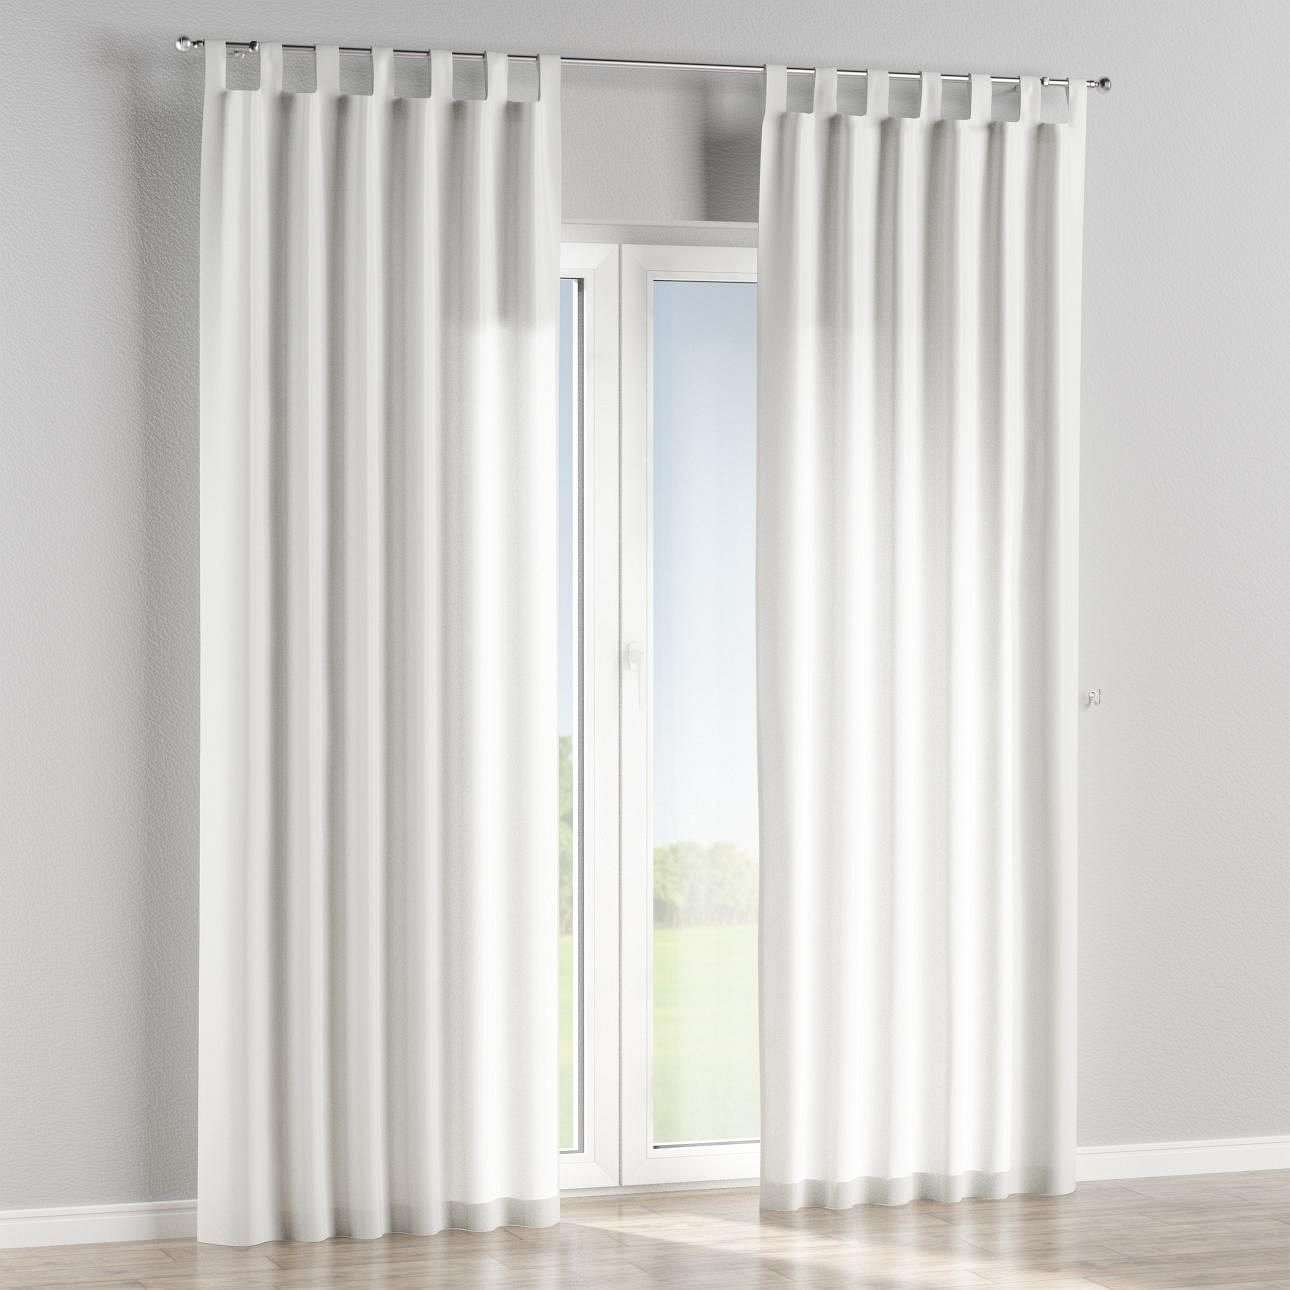 Tab top lined curtains in collection Jupiter, fabric: 127-72